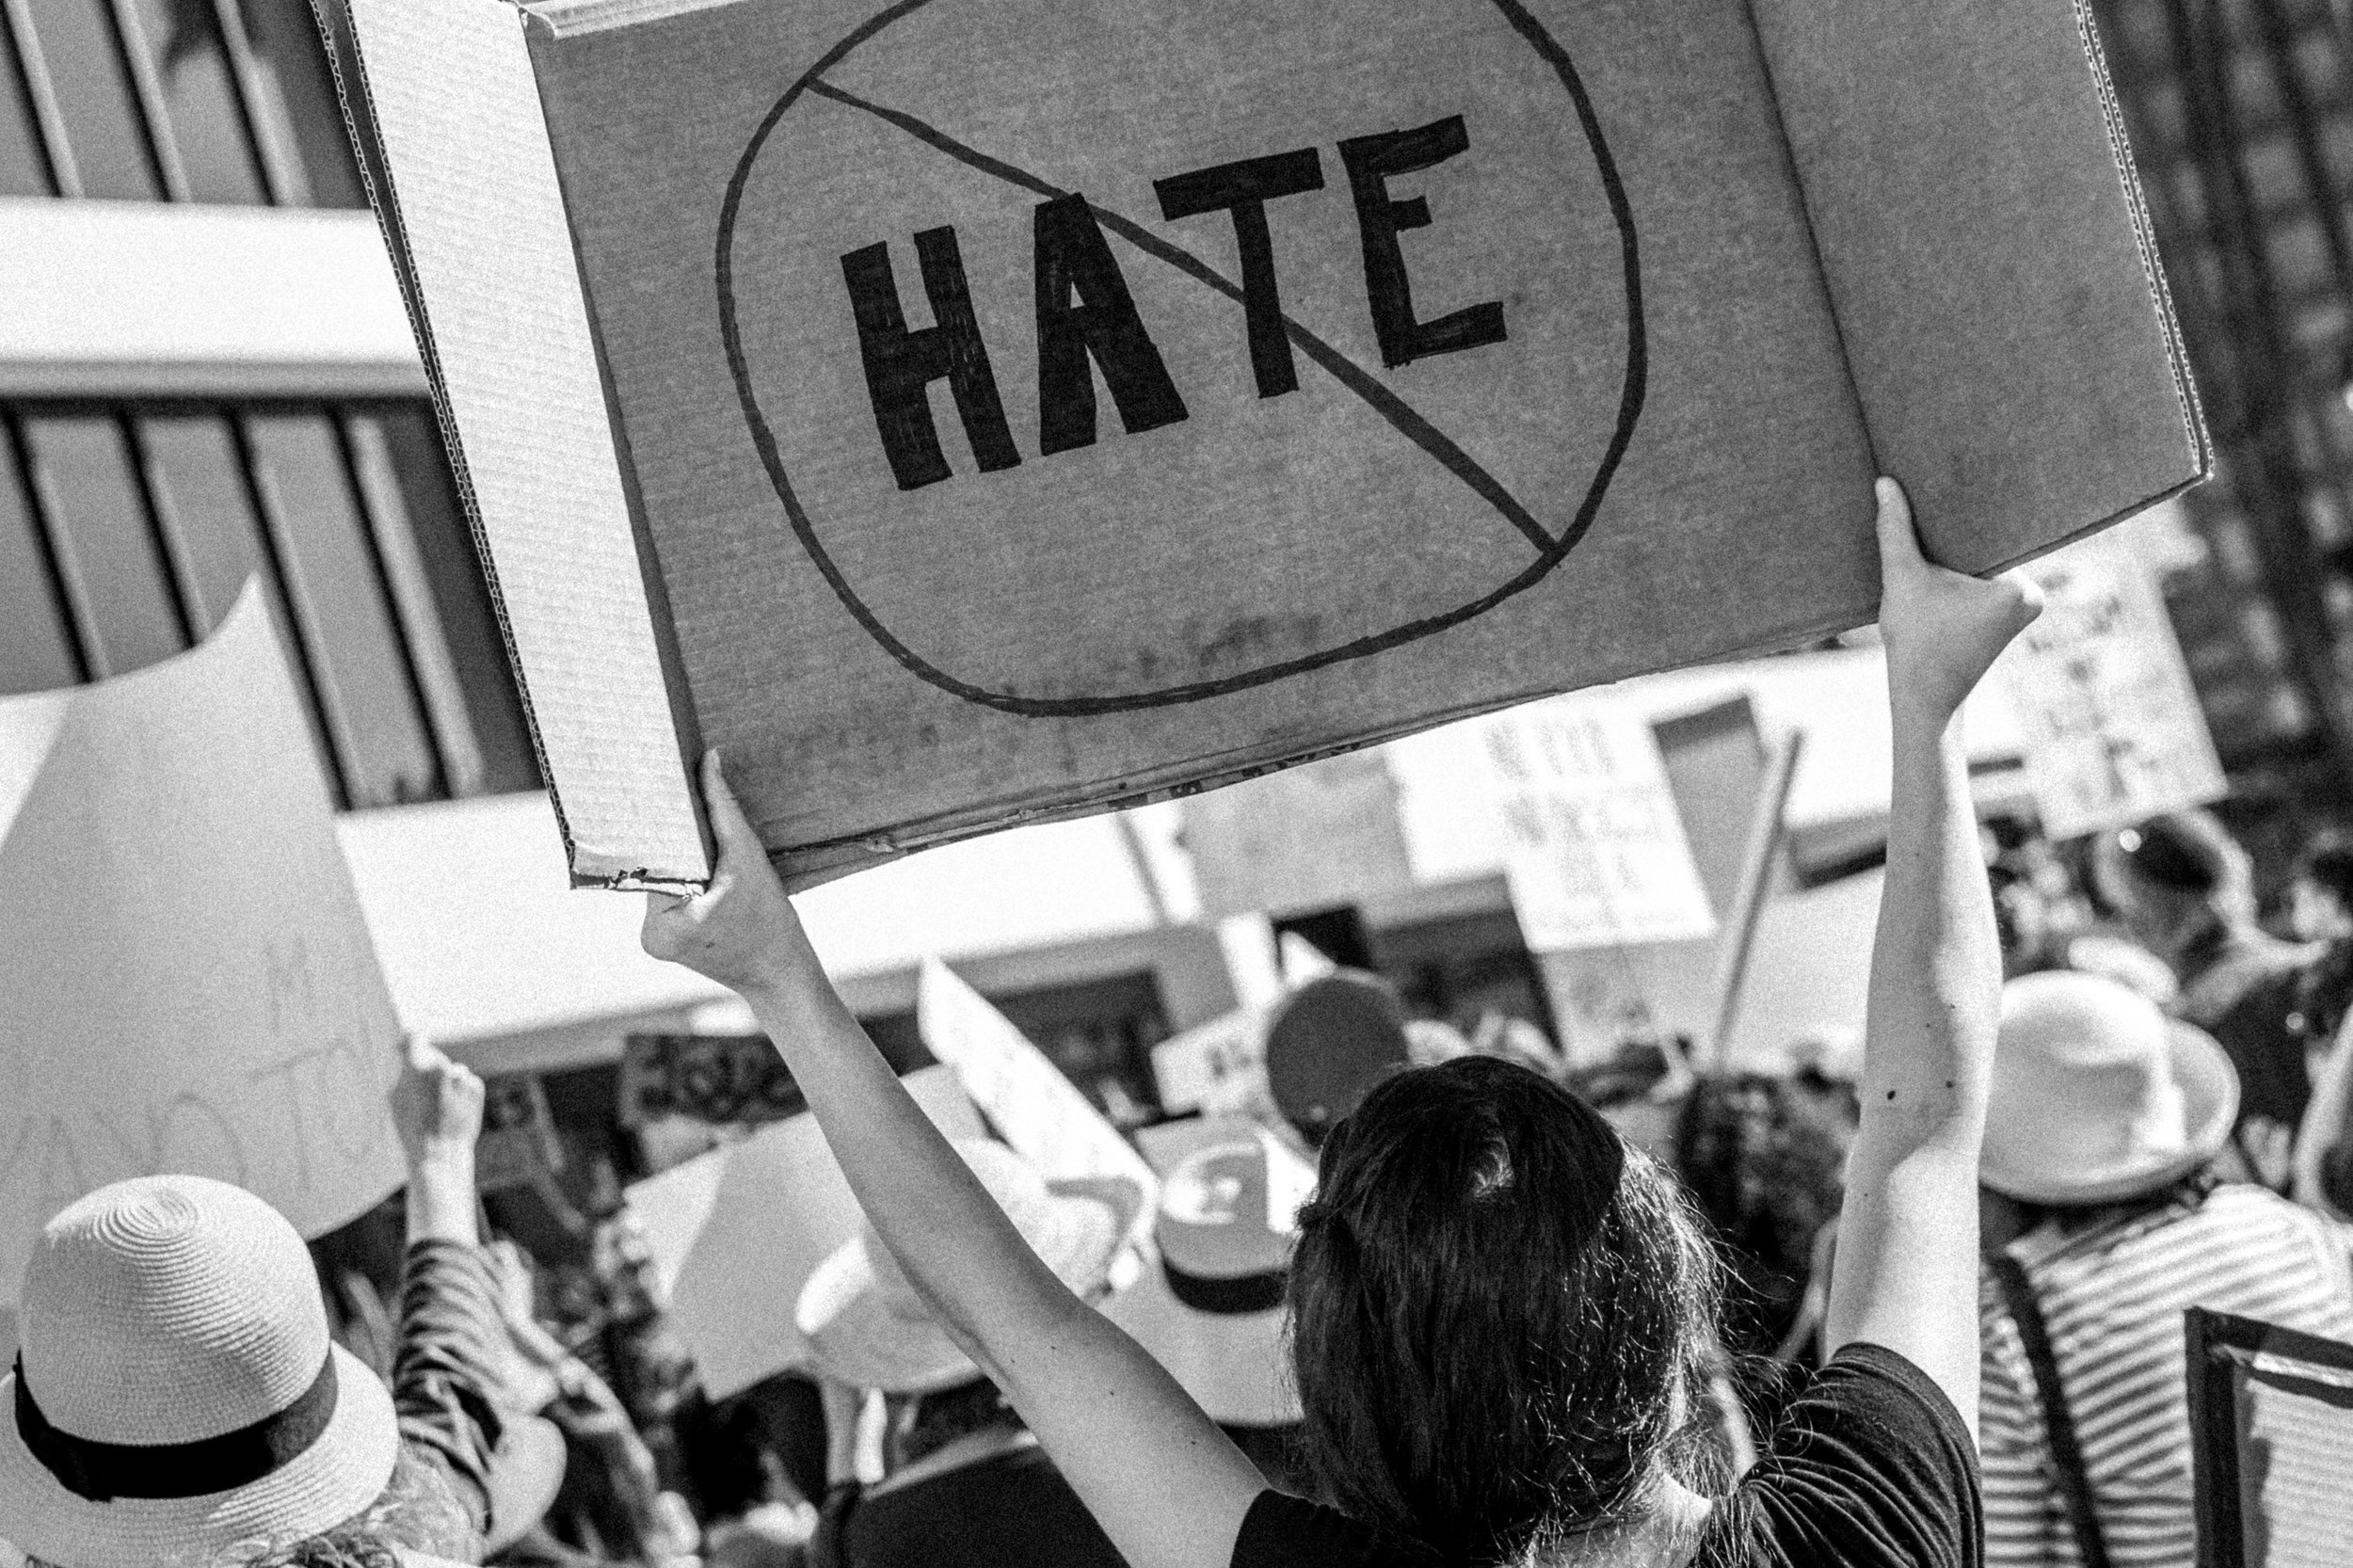 report an incident - Let us know if you have witnessed anti-Semitism. Report hate and bigotry now.